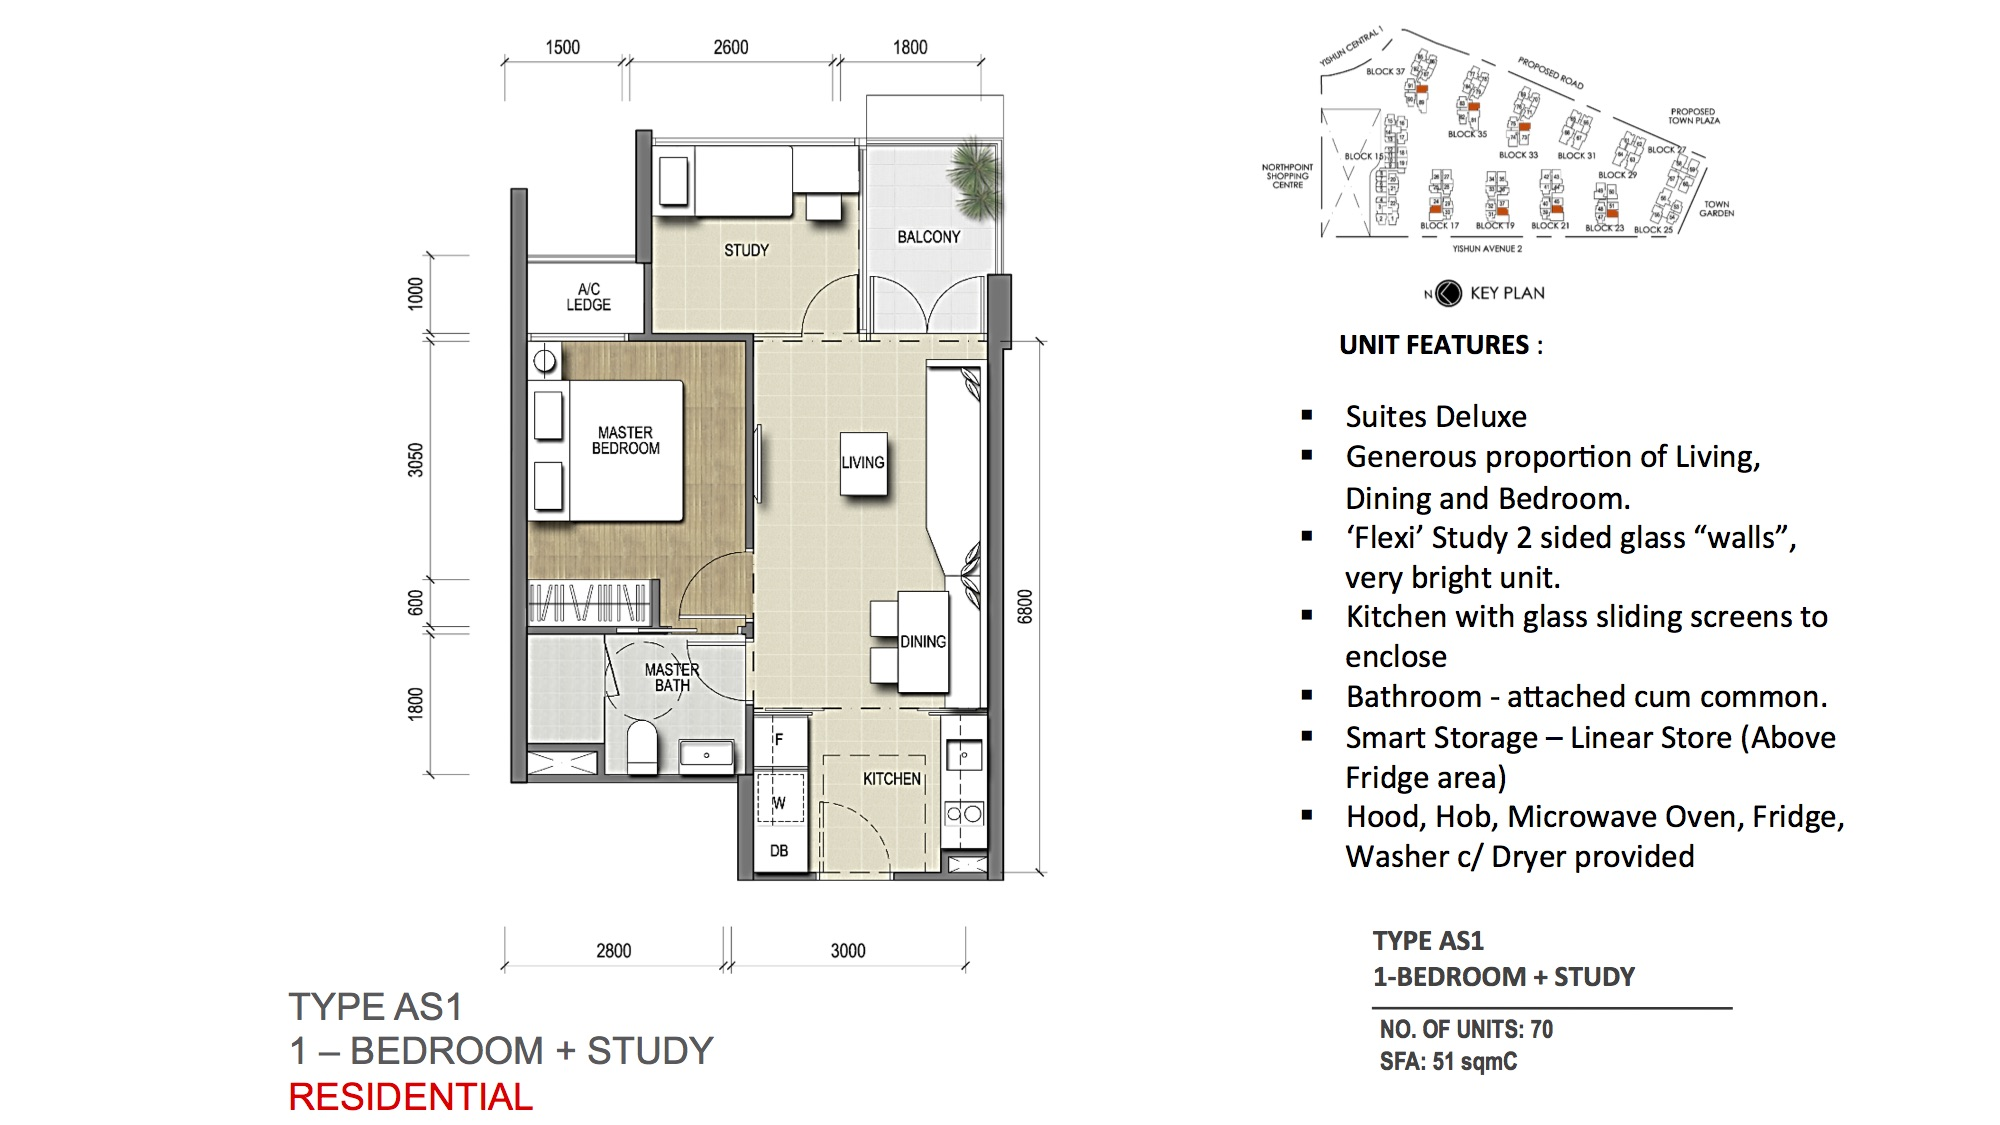 TYPE AS1 1-Bedroom + Study